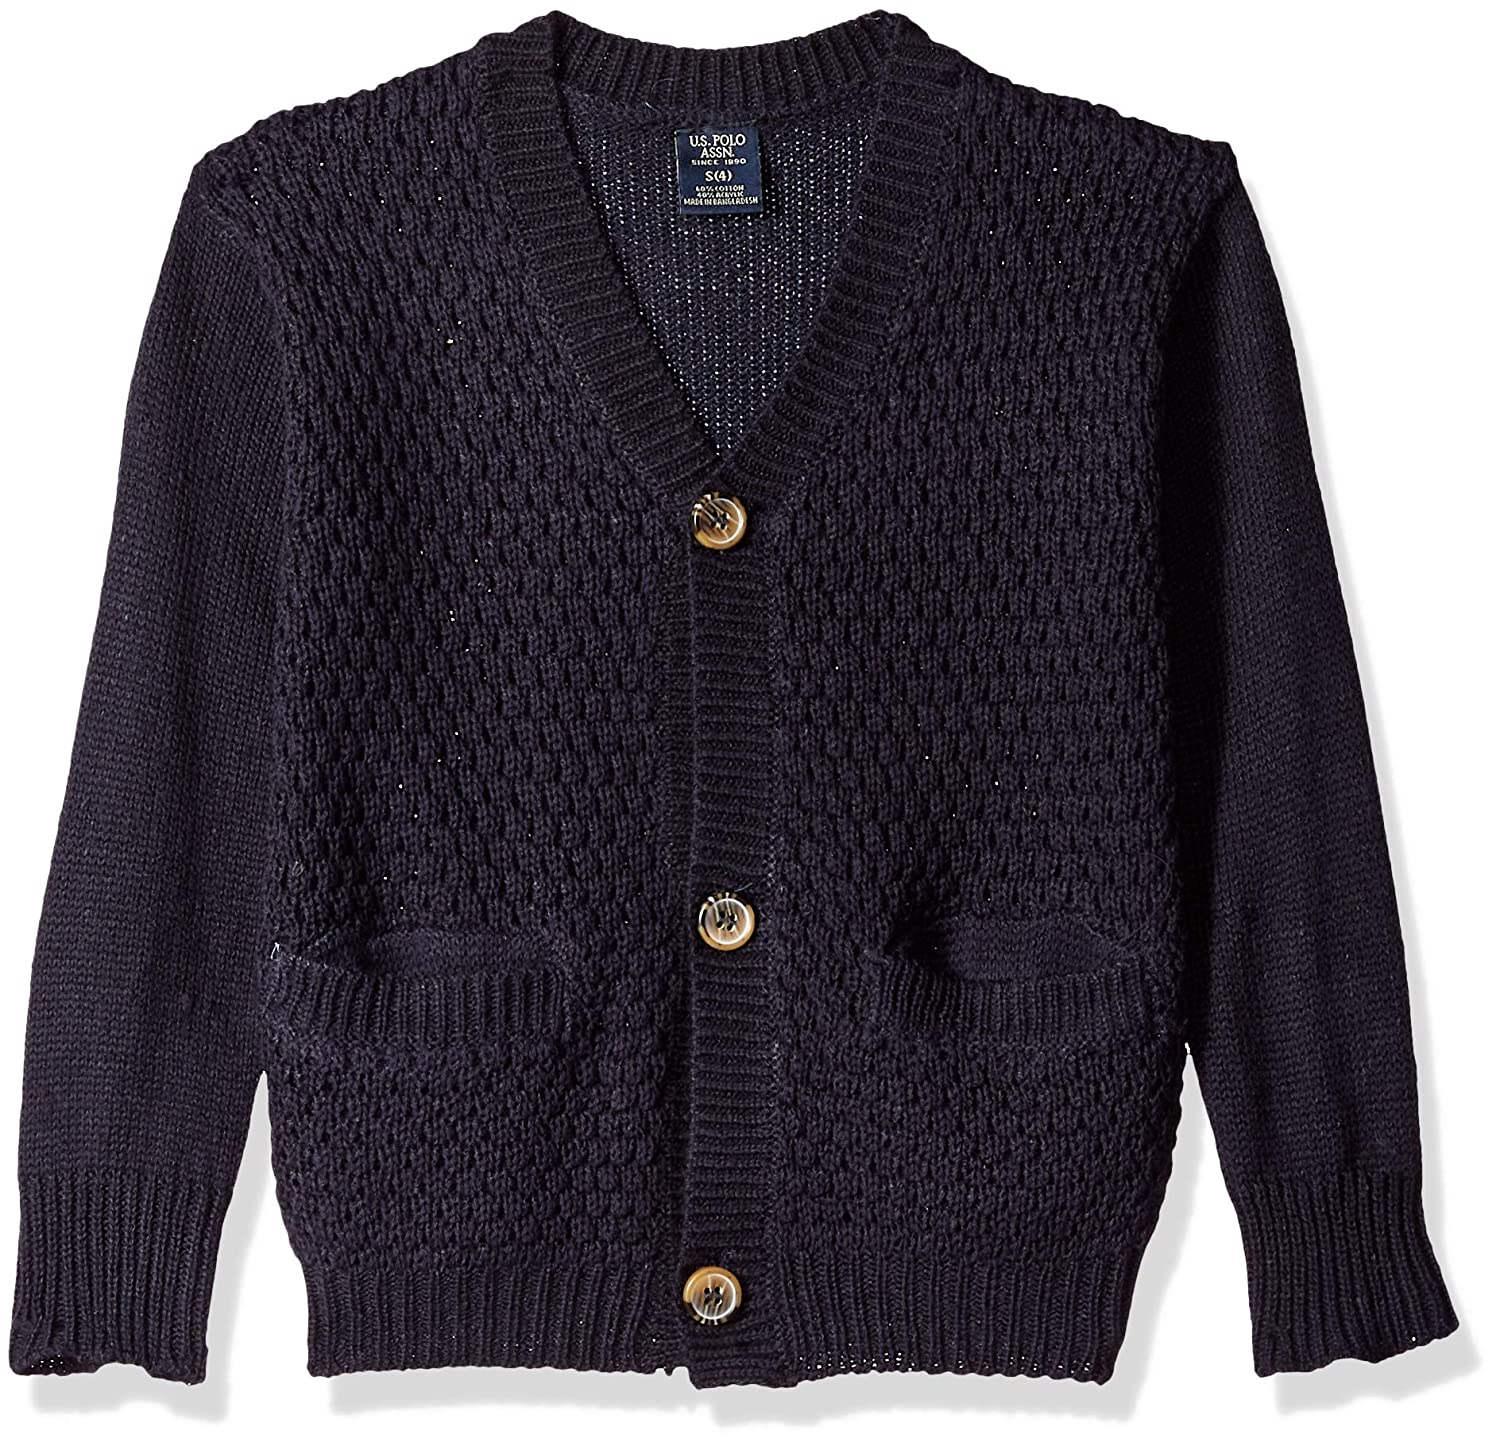 U.S. Polo Assn. Boys' Birdseye Knit Cardigan Sweater